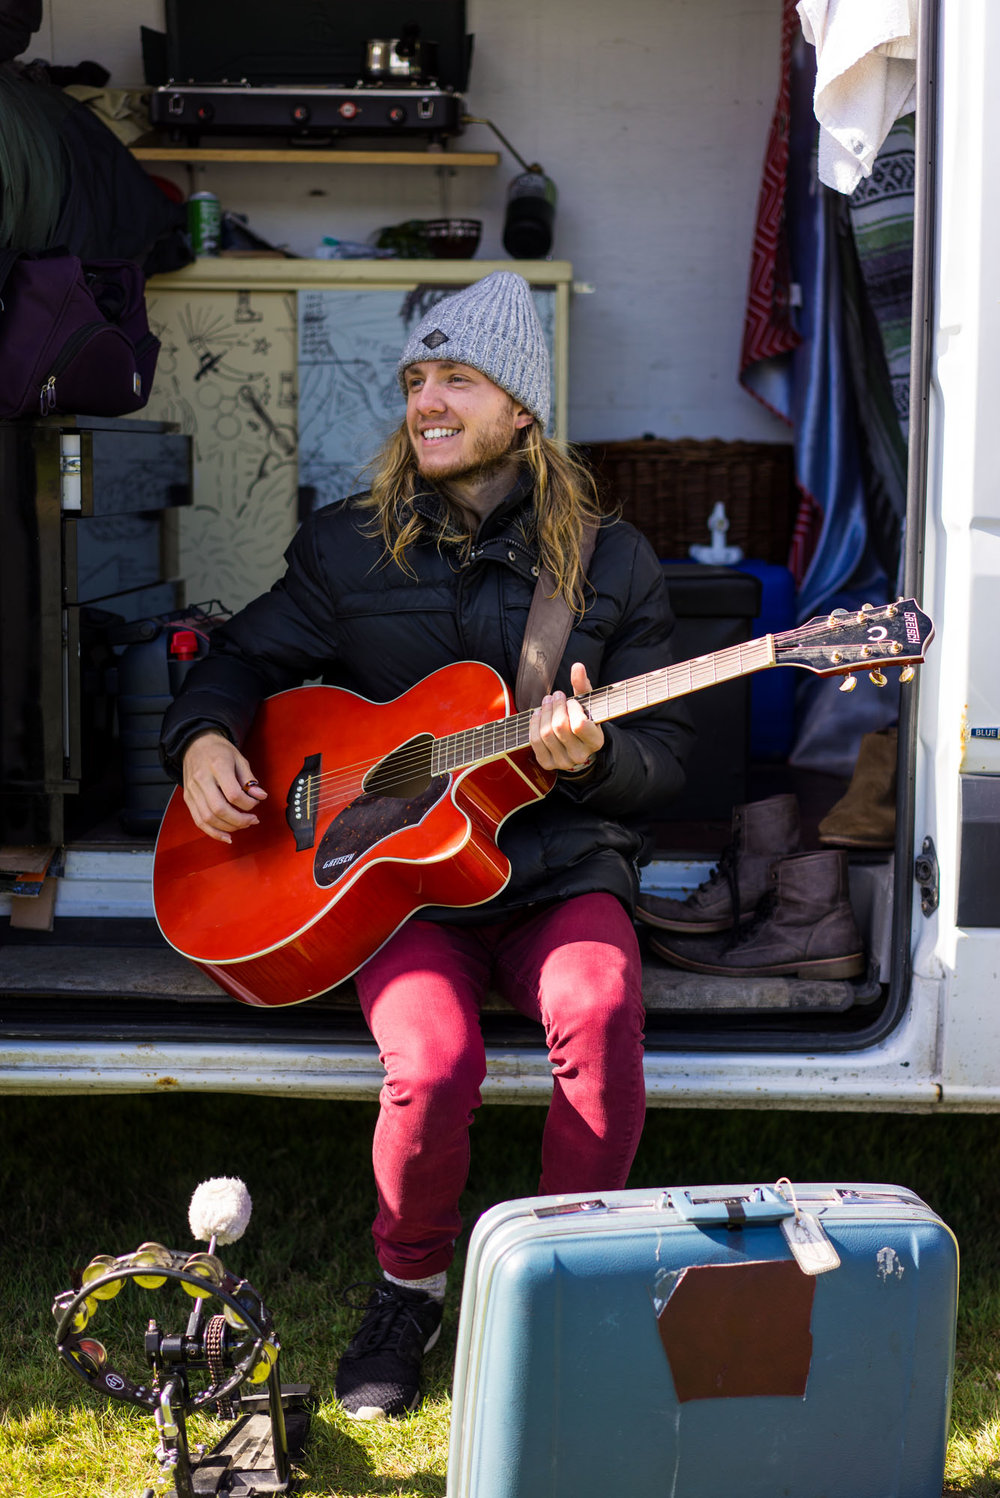 Anthony playing his guitar at camp